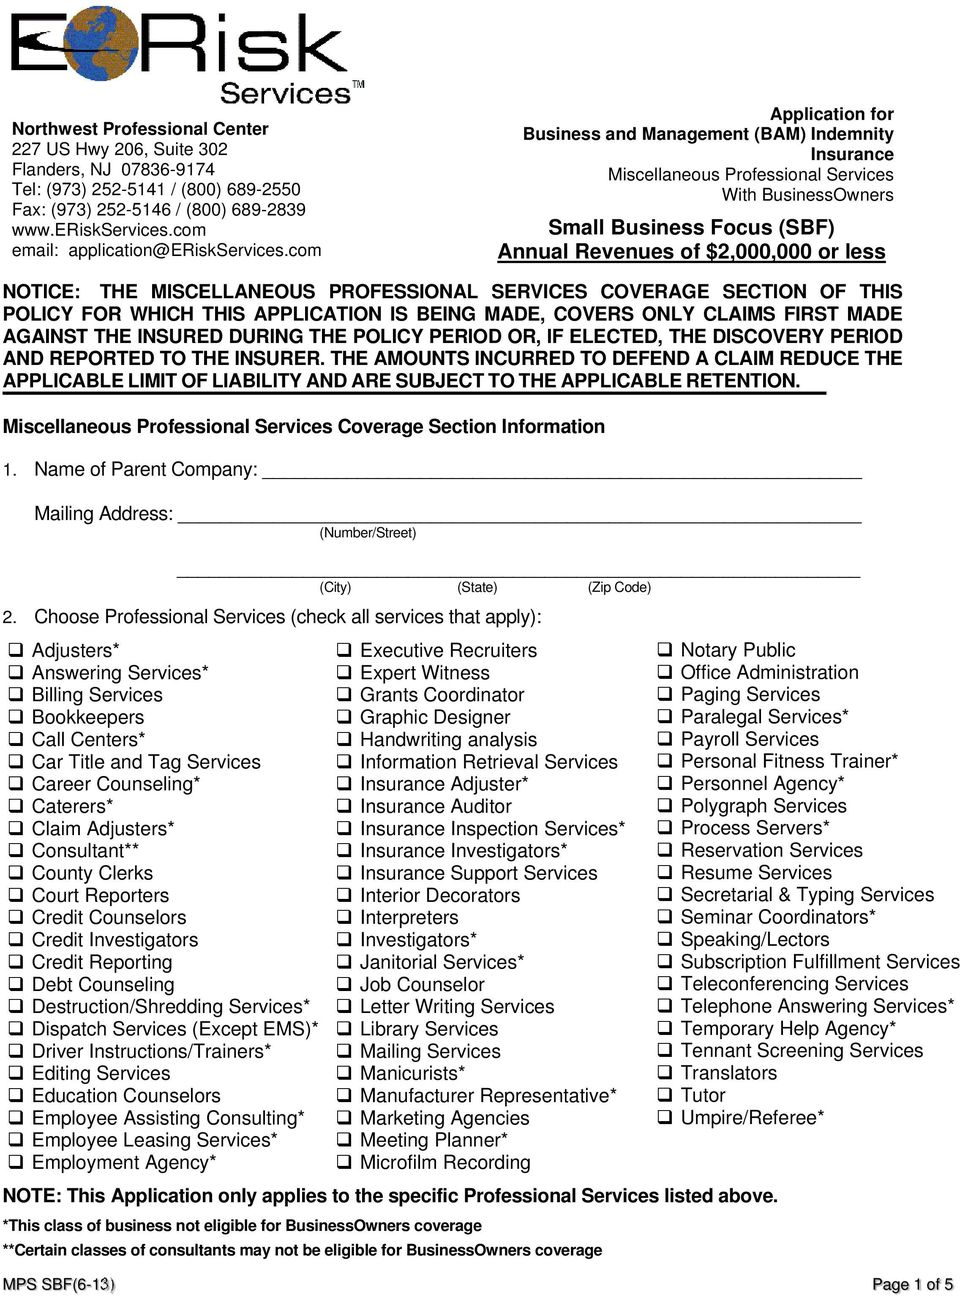 com Application for Business and Management (BAM) Indemnity Insurance Miscellaneous Professional Services With BusinessOwners Small Business Focus (SBF) Annual Revenues of $2,000,000 or less NOTICE: